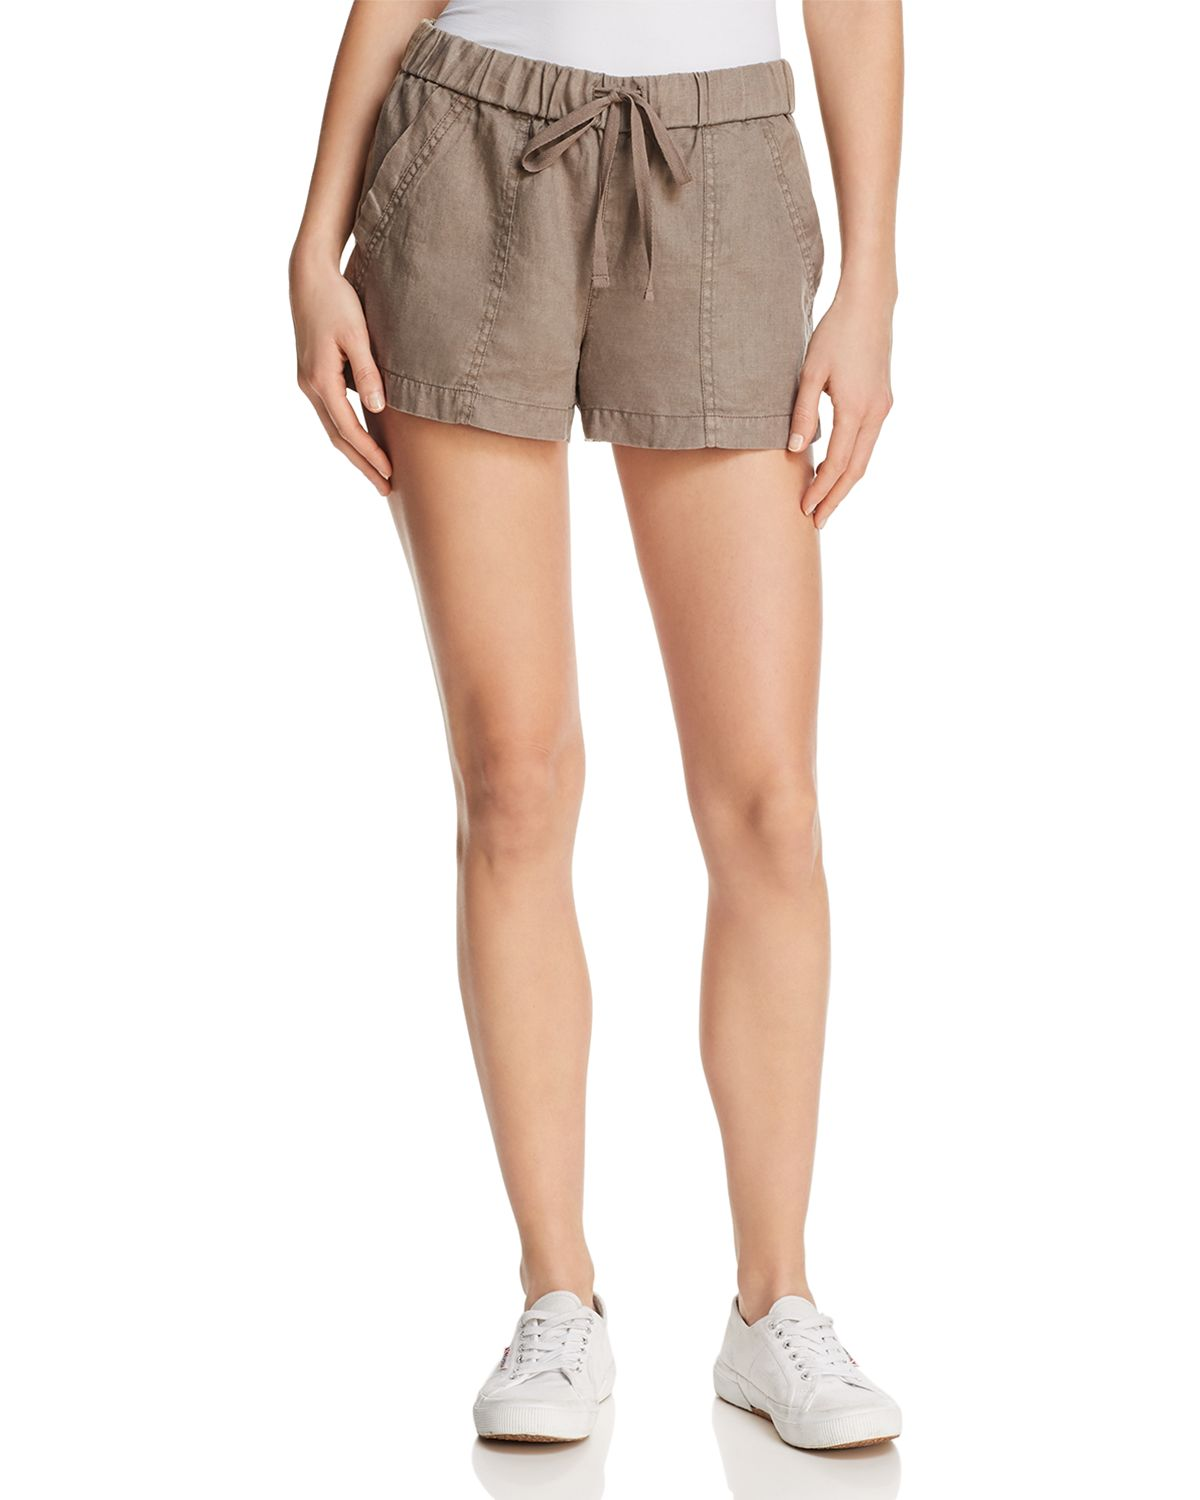 Fosette Cargo Shorts by Joie